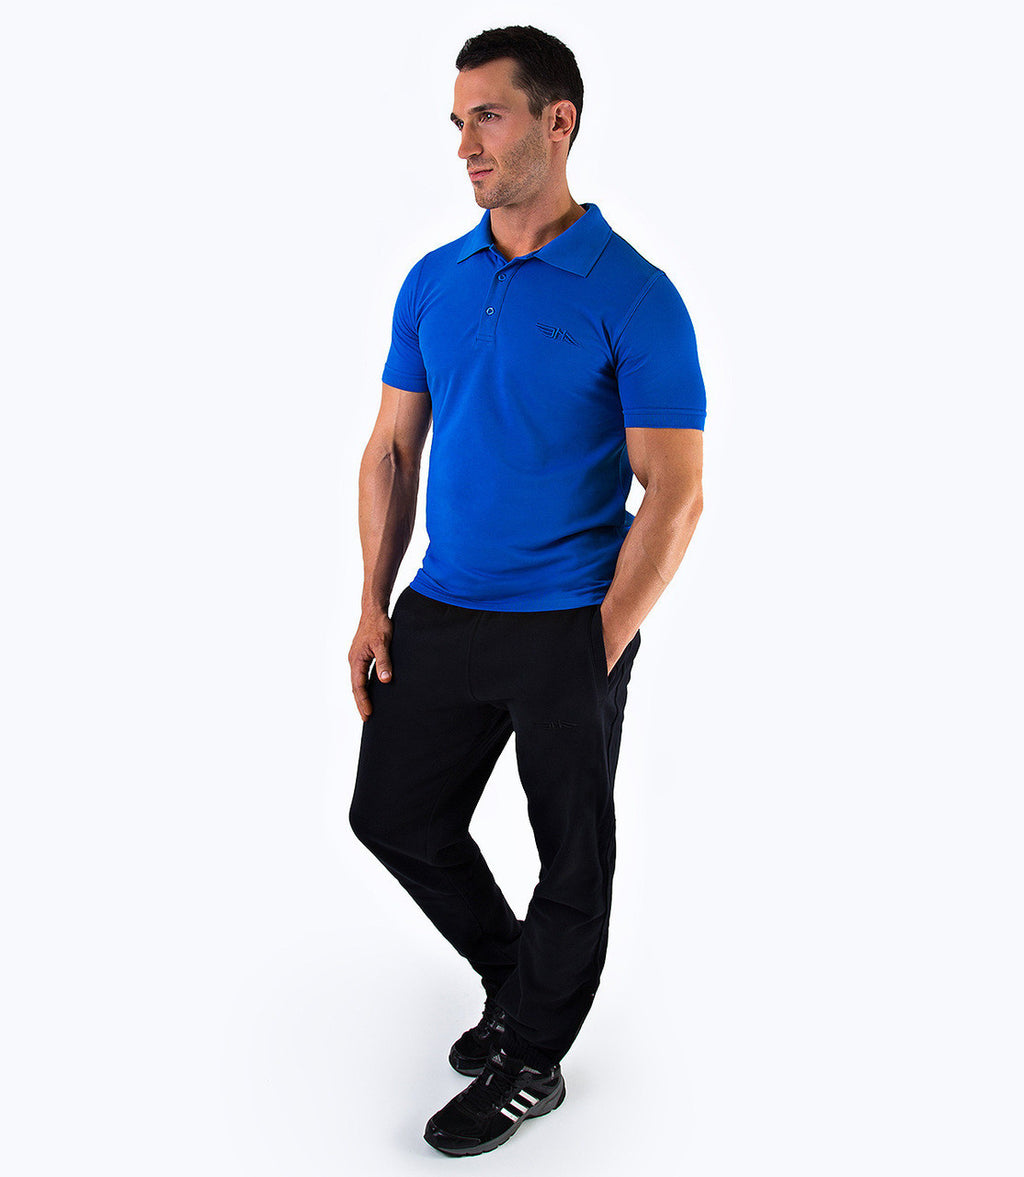 MENS PREMIUM POLO SHIRT - BLUE